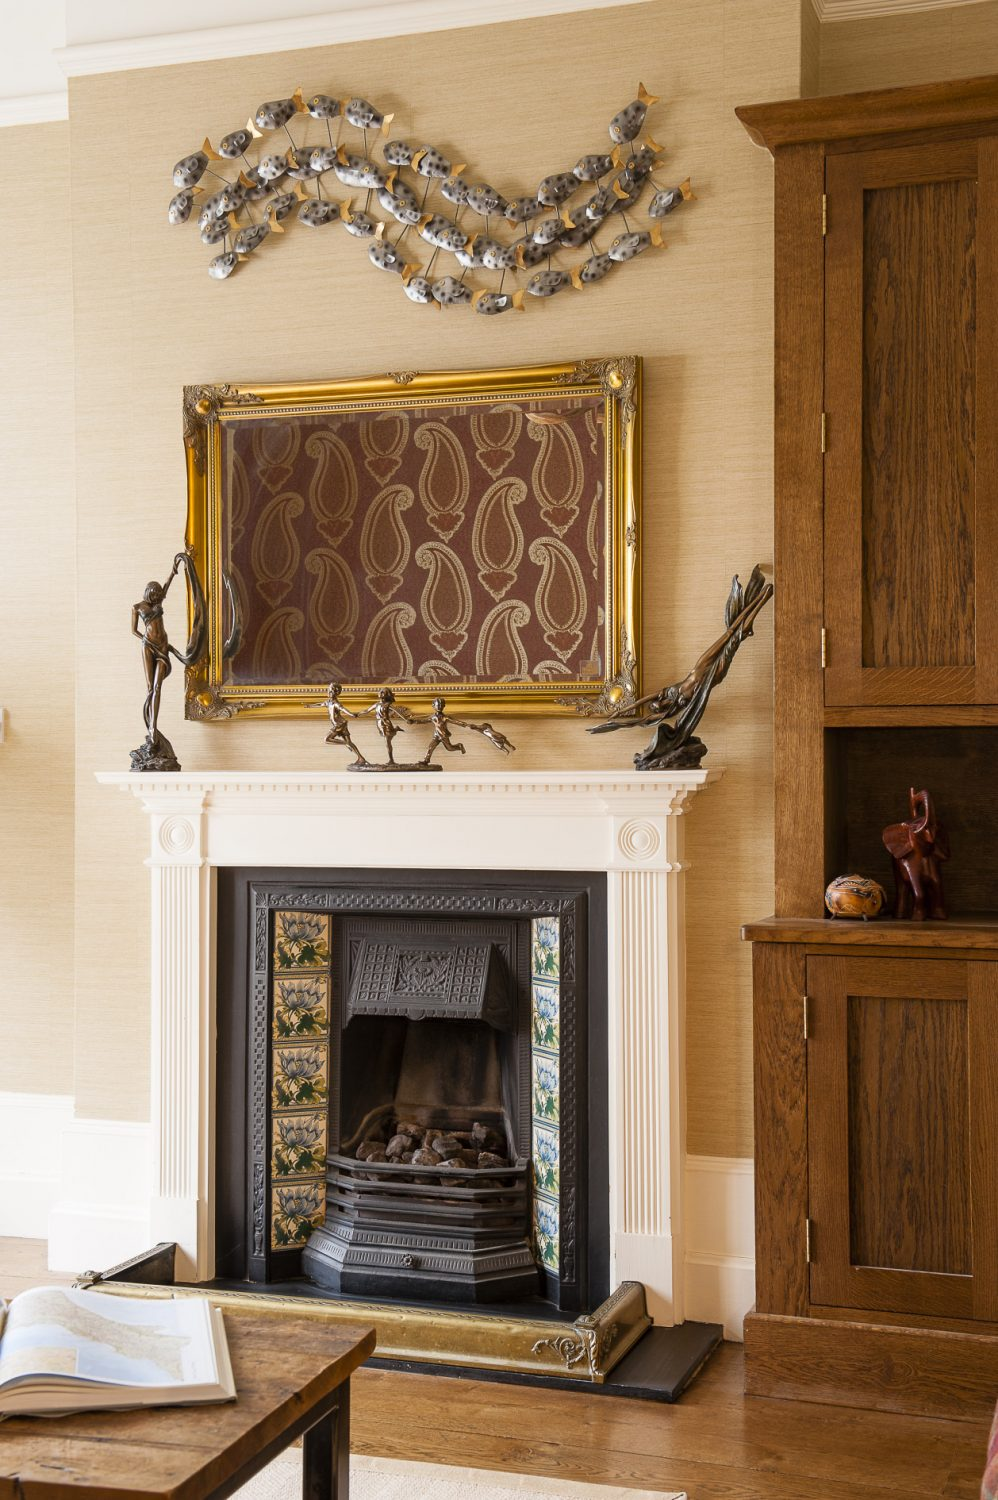 The back room is understated, calm and has quite a masculine feel incorporating comfortable leather sofas and an antler chandelier